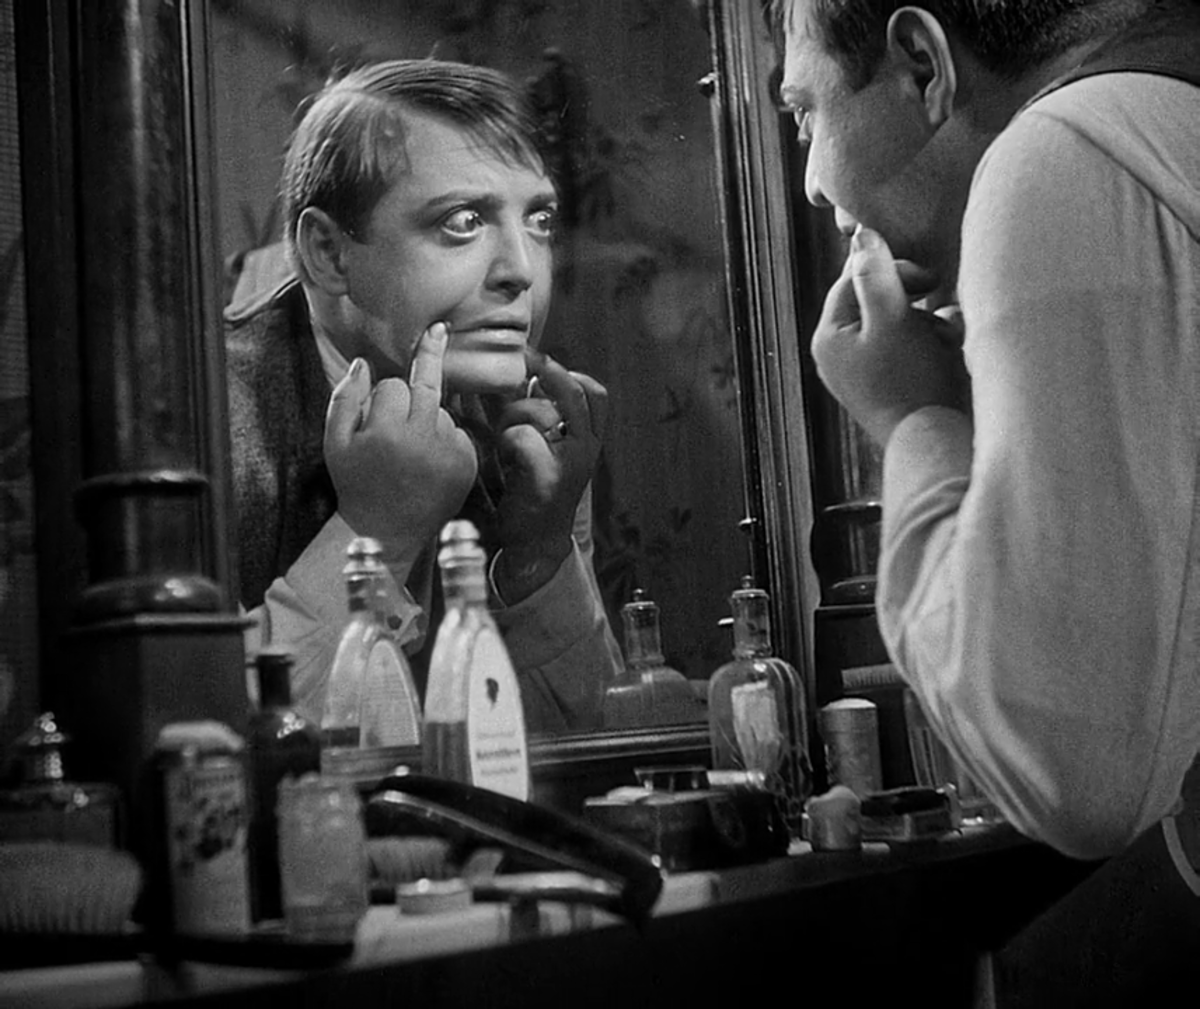 Lorre maximises every second of screen time to portray a genuinely unsettling character, a role that would typecast him throughout his career.